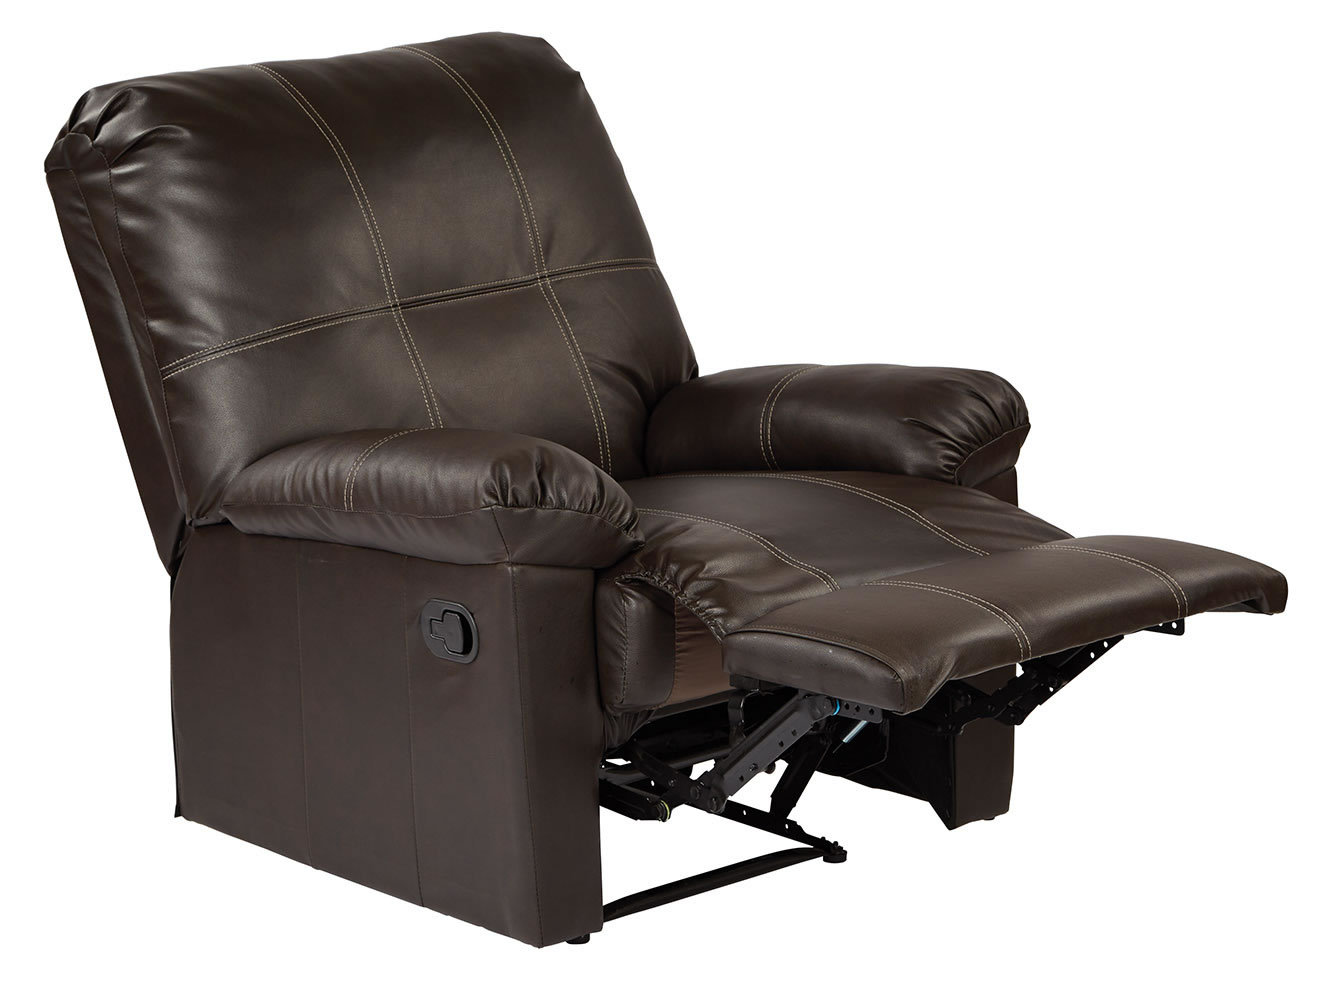 kensington leather chair armless office chairs eco recliner living room lounge club